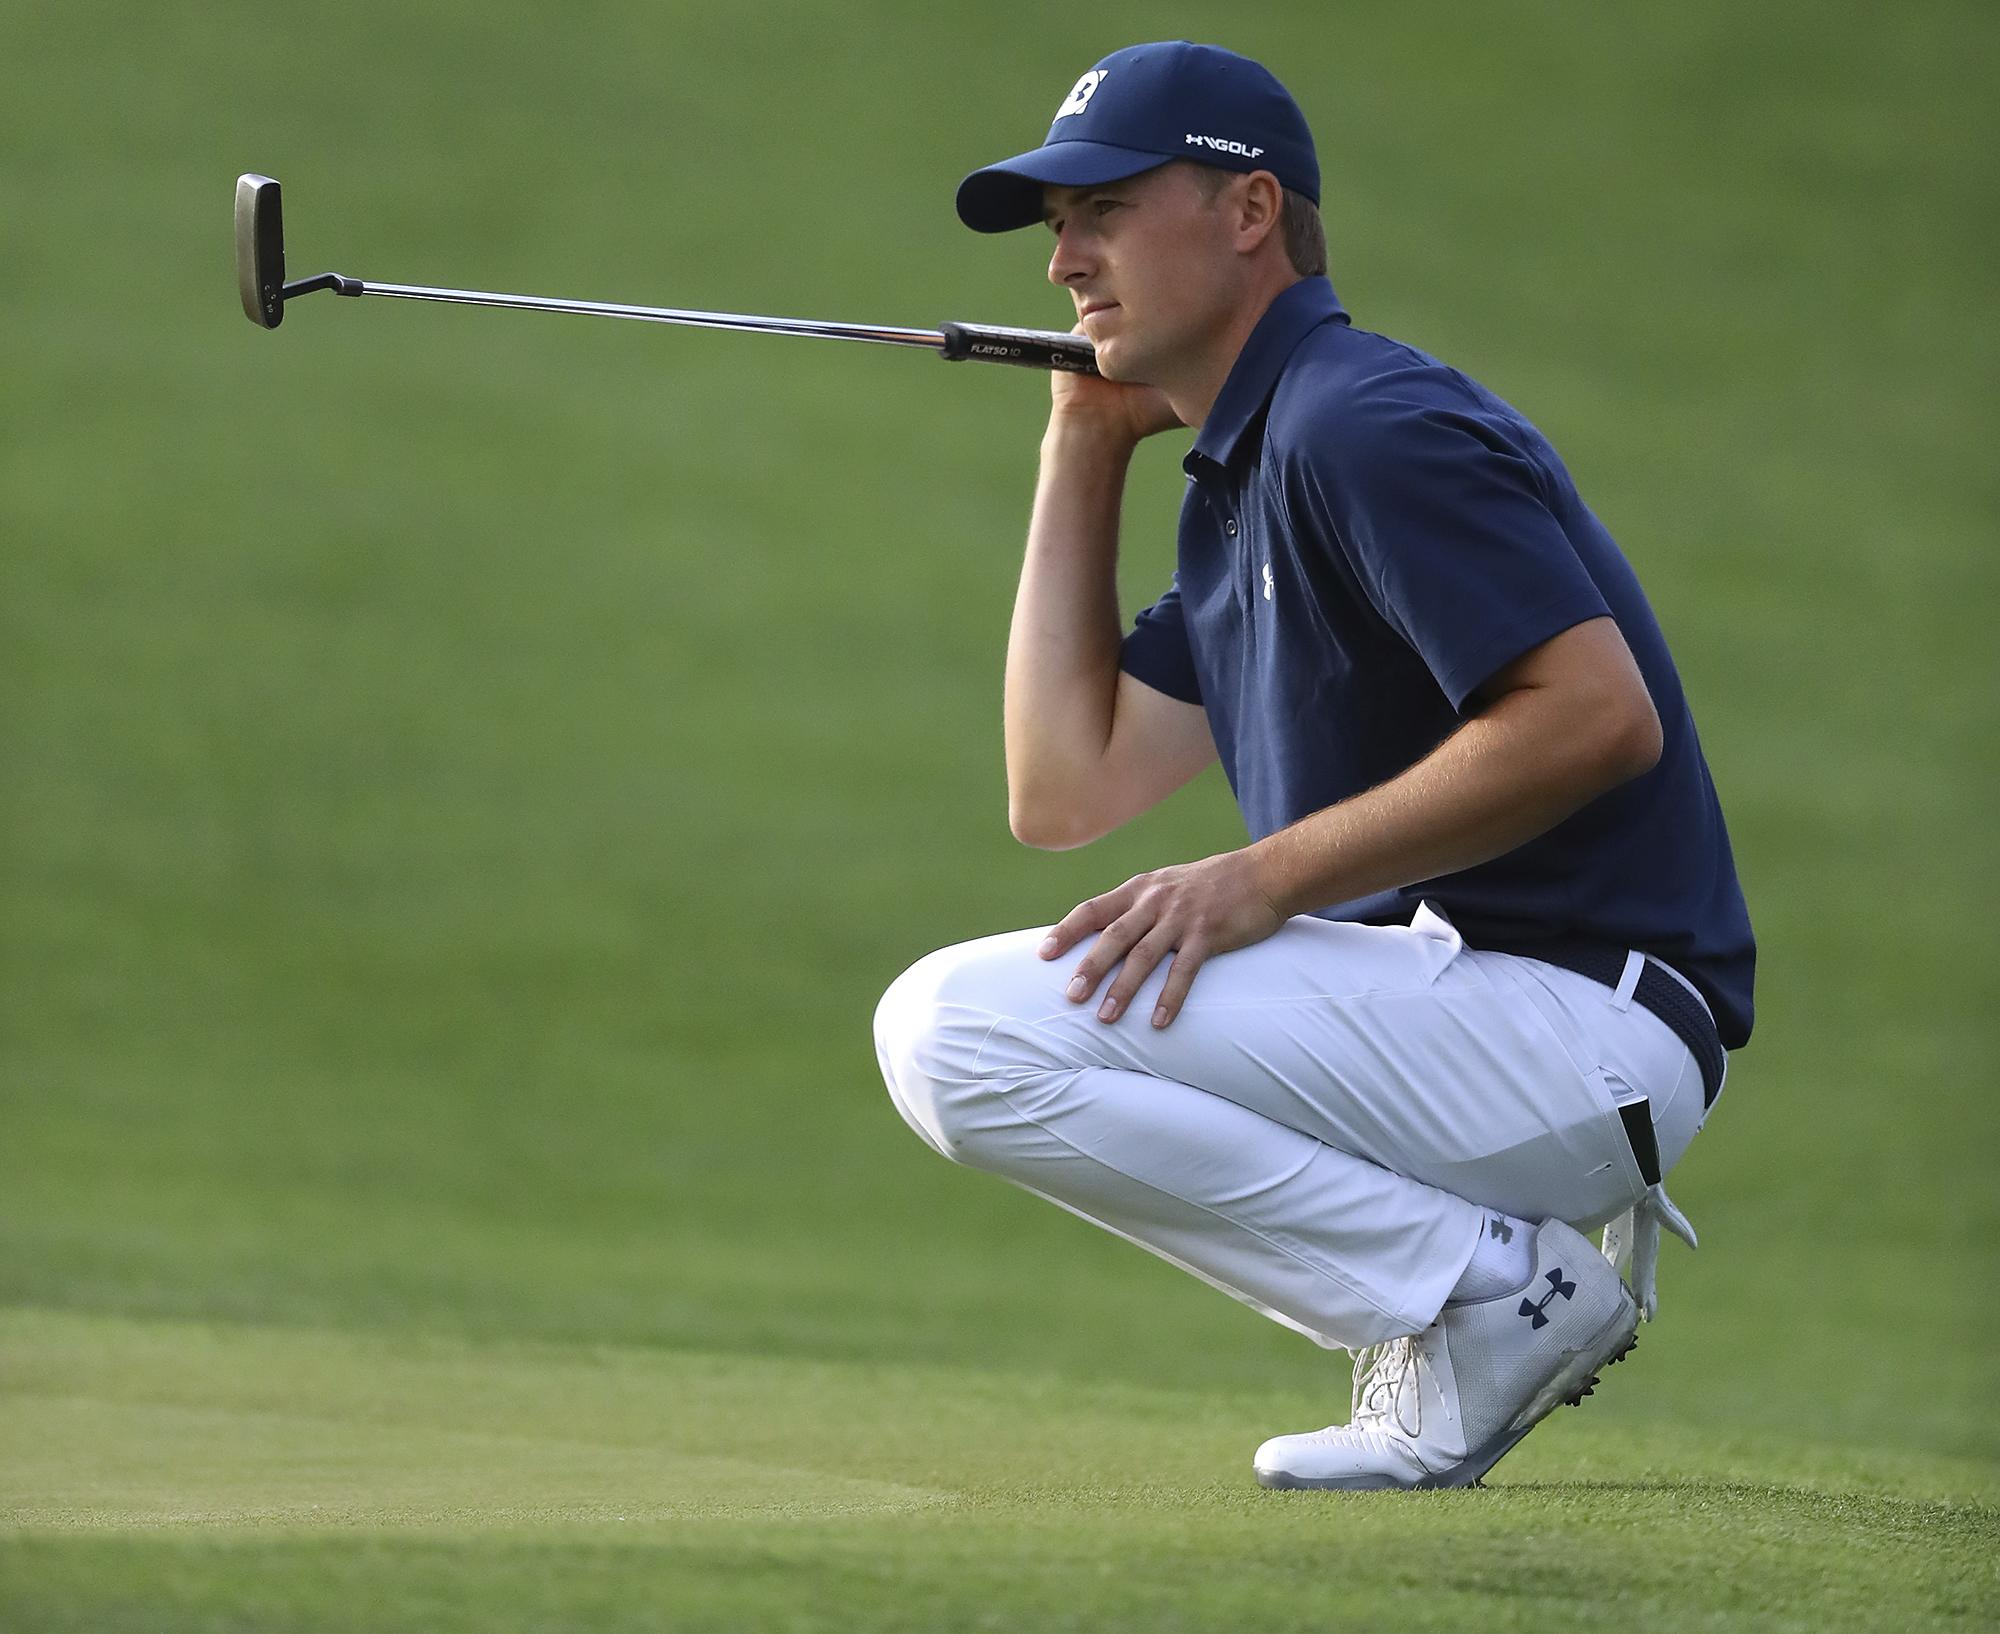 Jordan Spieth leads after the first round